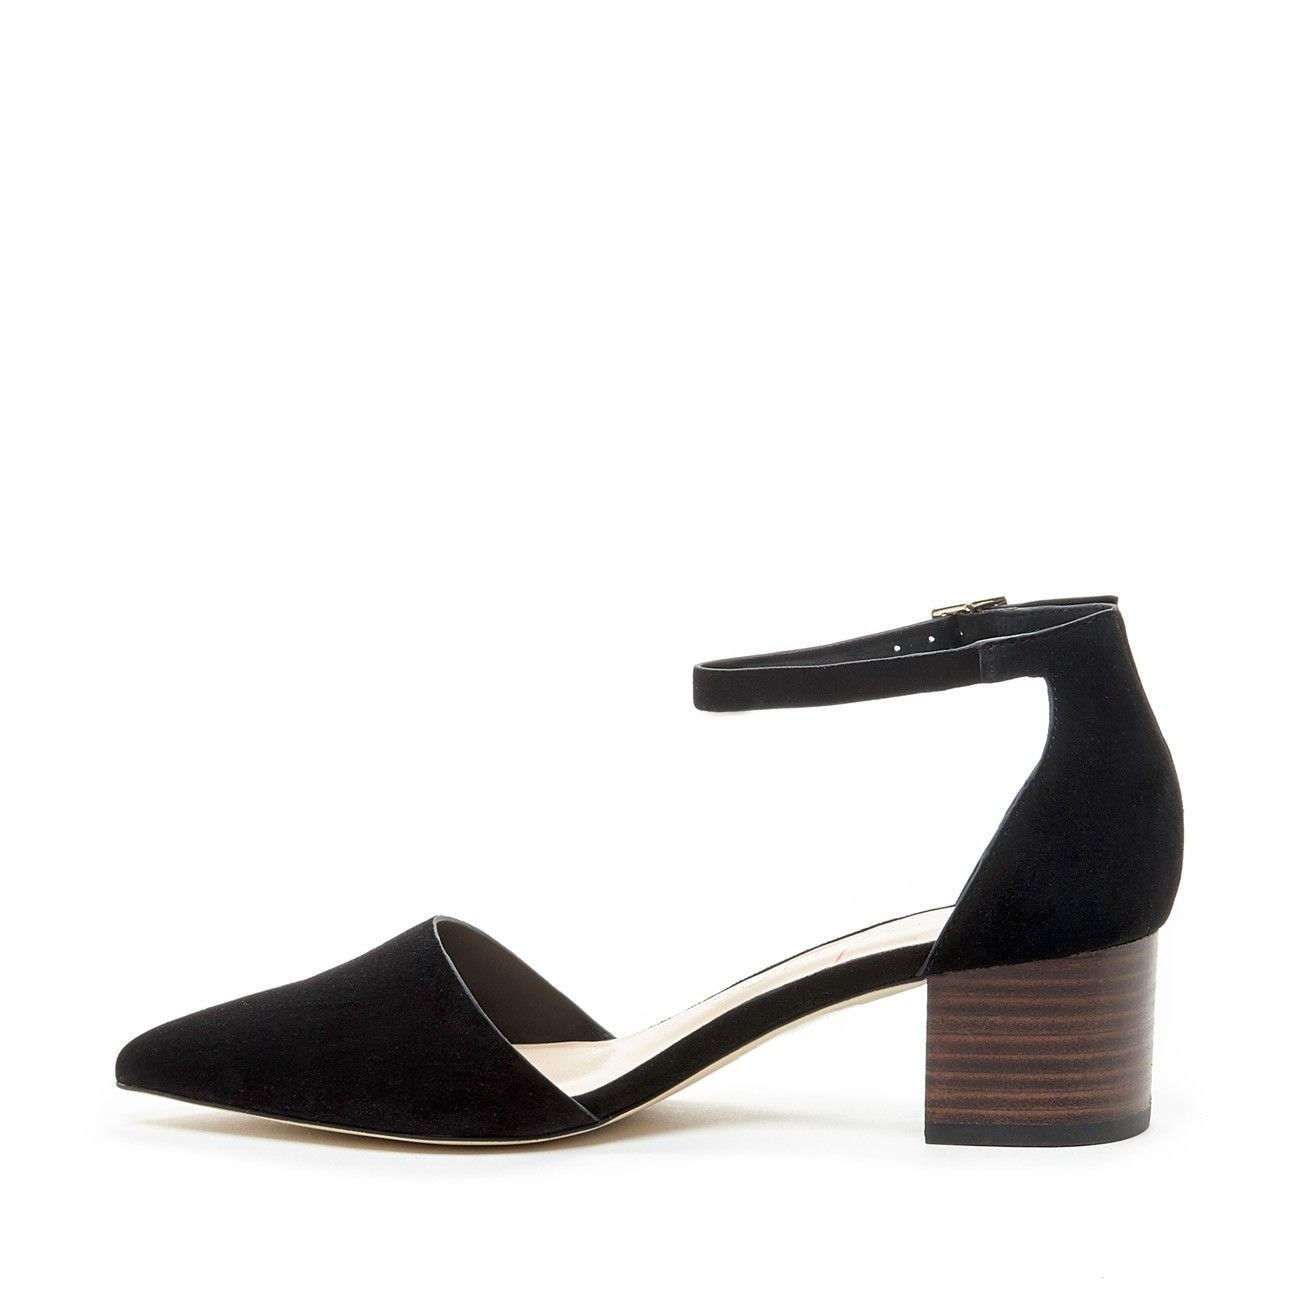 Sole Society Katarina | Sole Society Shoes, Bags and Accessories